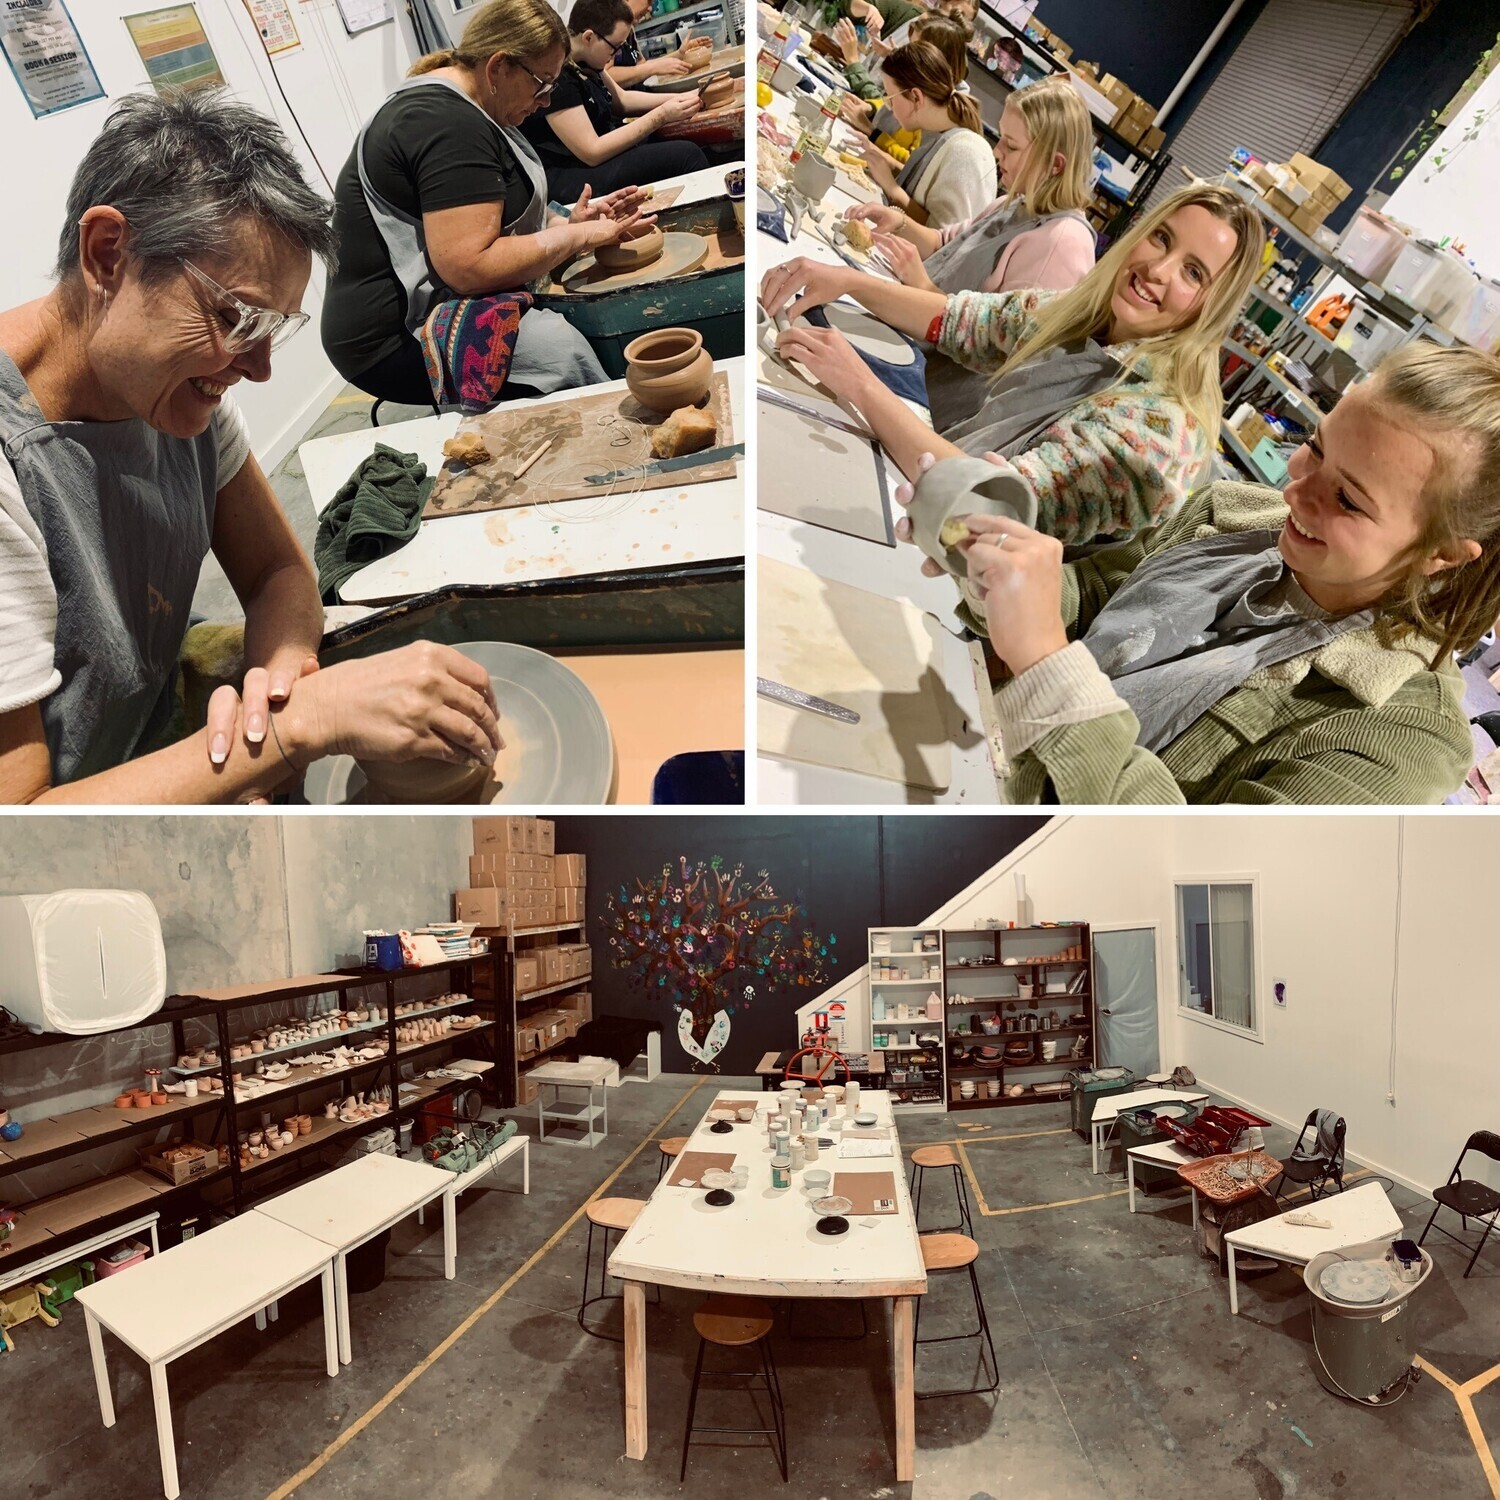 Slip, Spin & Sculpt! An 8 week clay course Sat 16th Oct 10-12:30pm